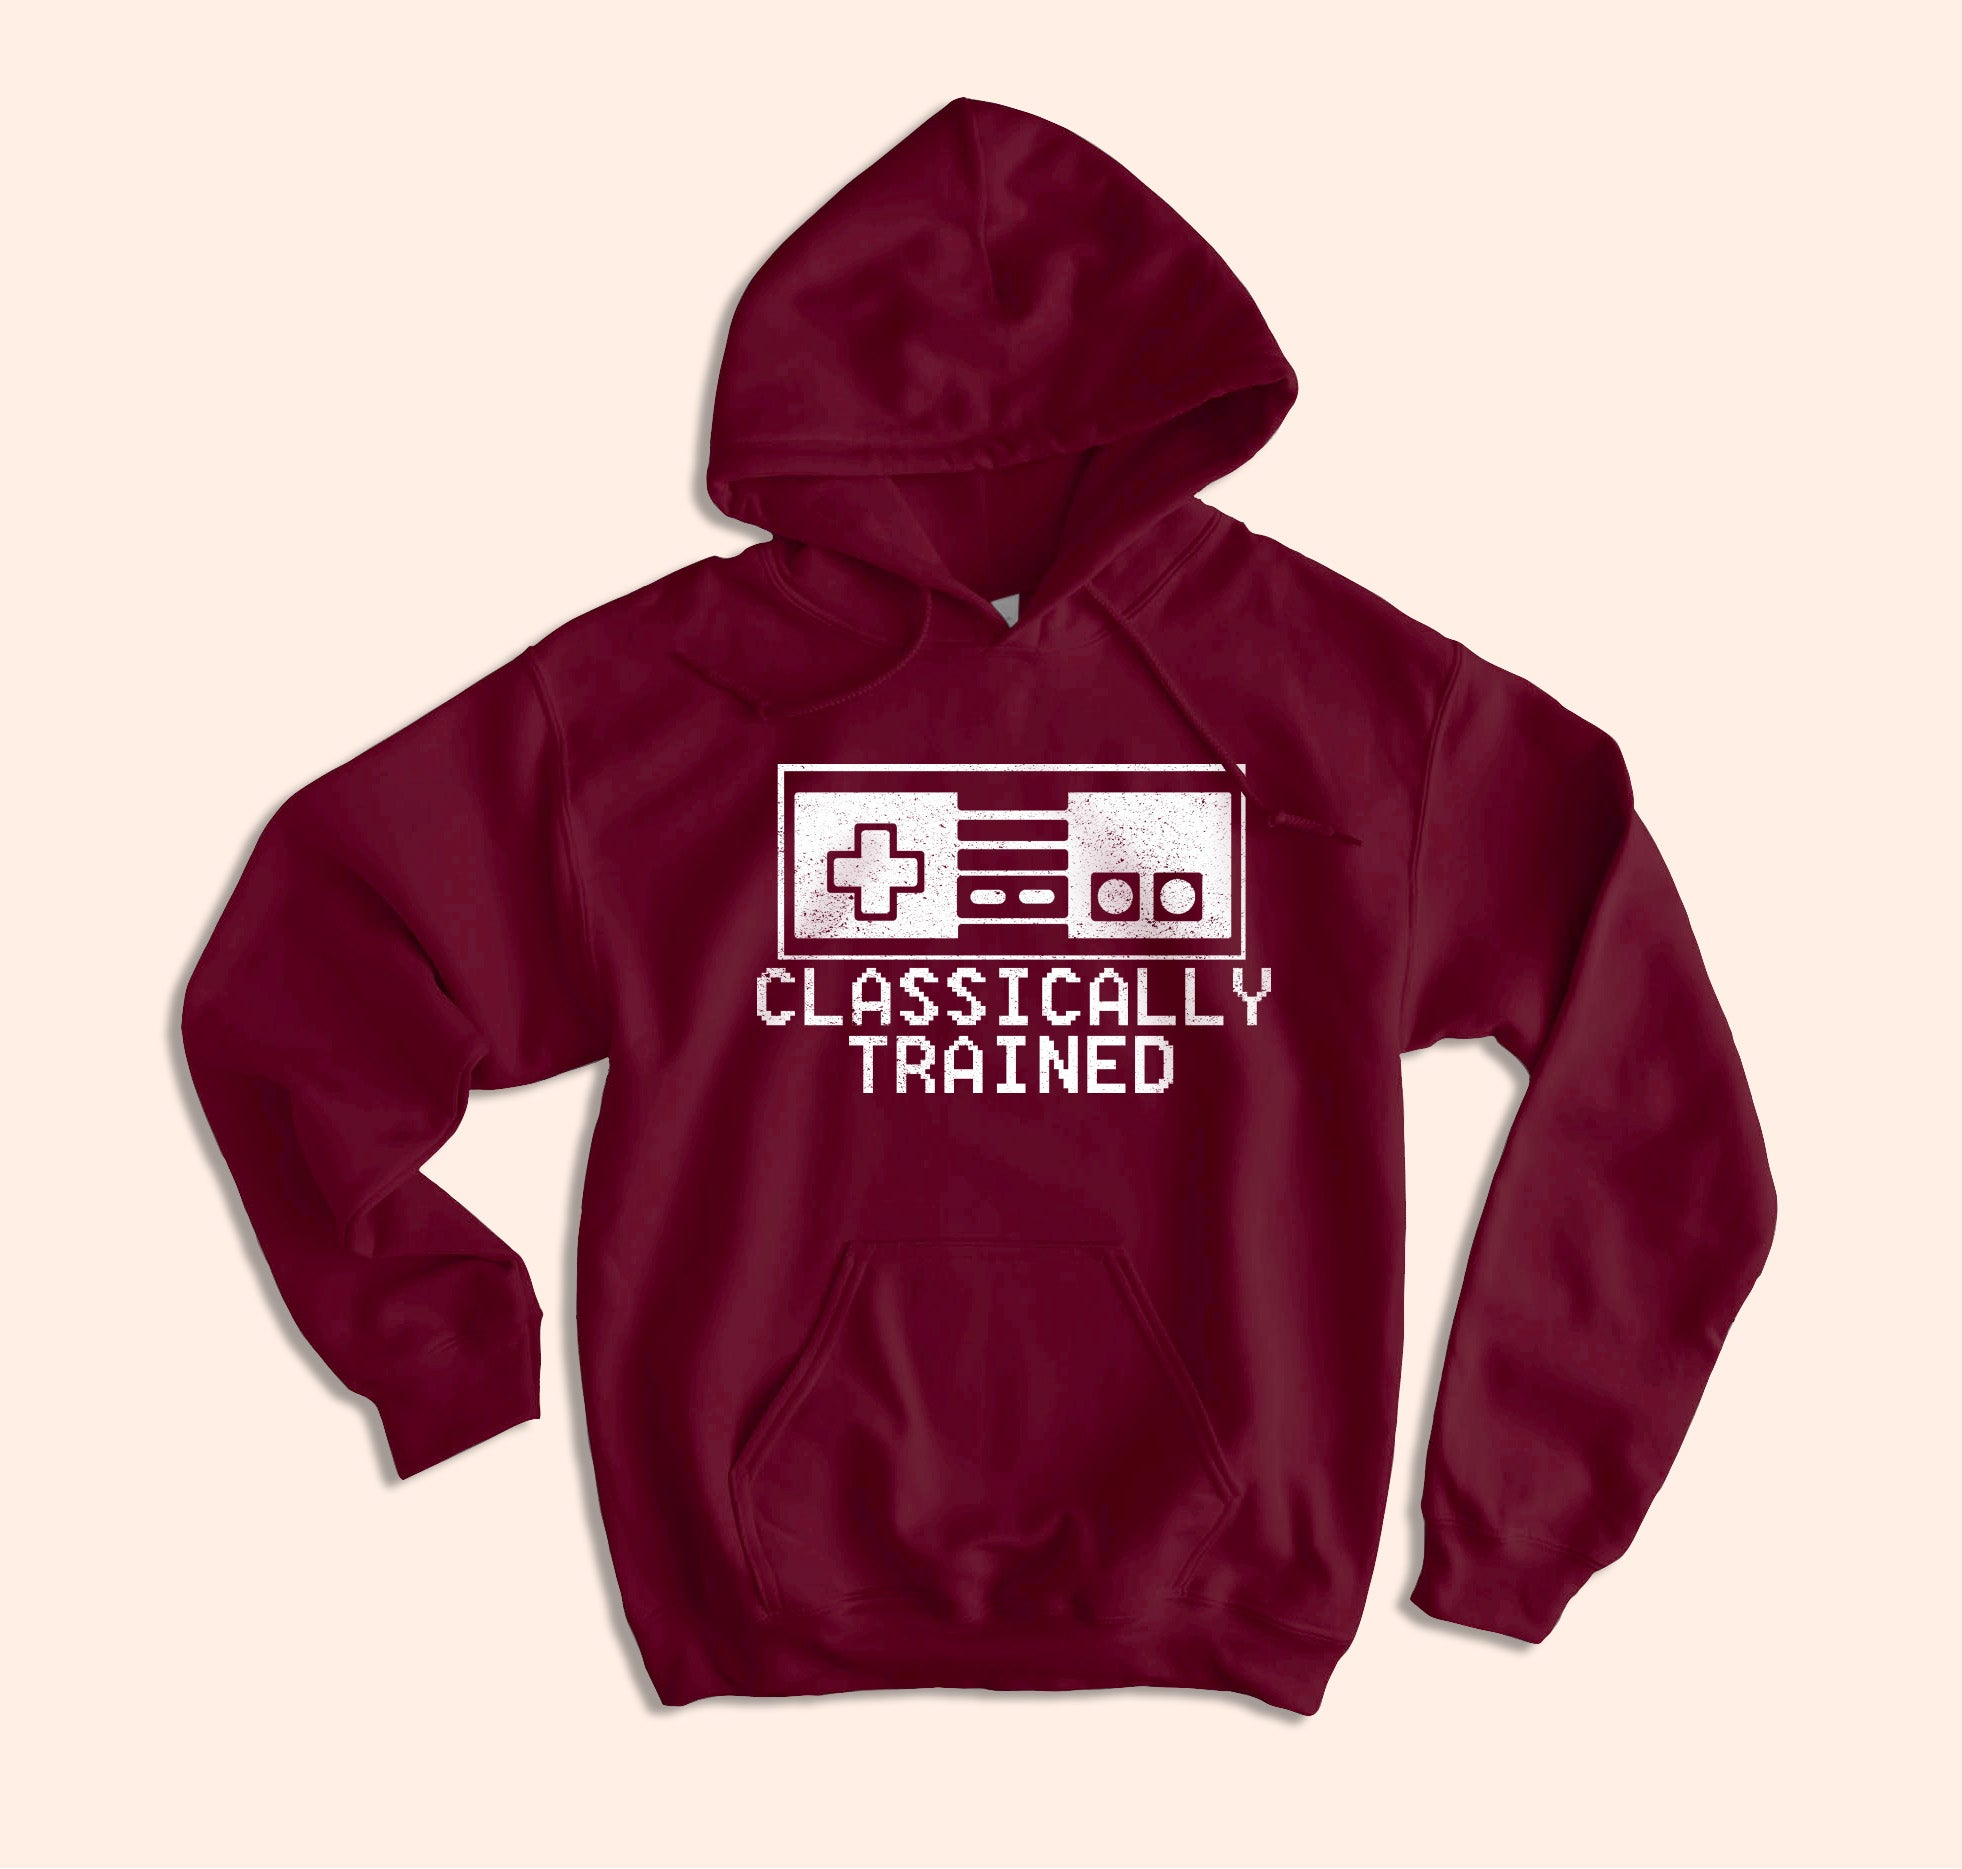 Classically Trained Hoodie